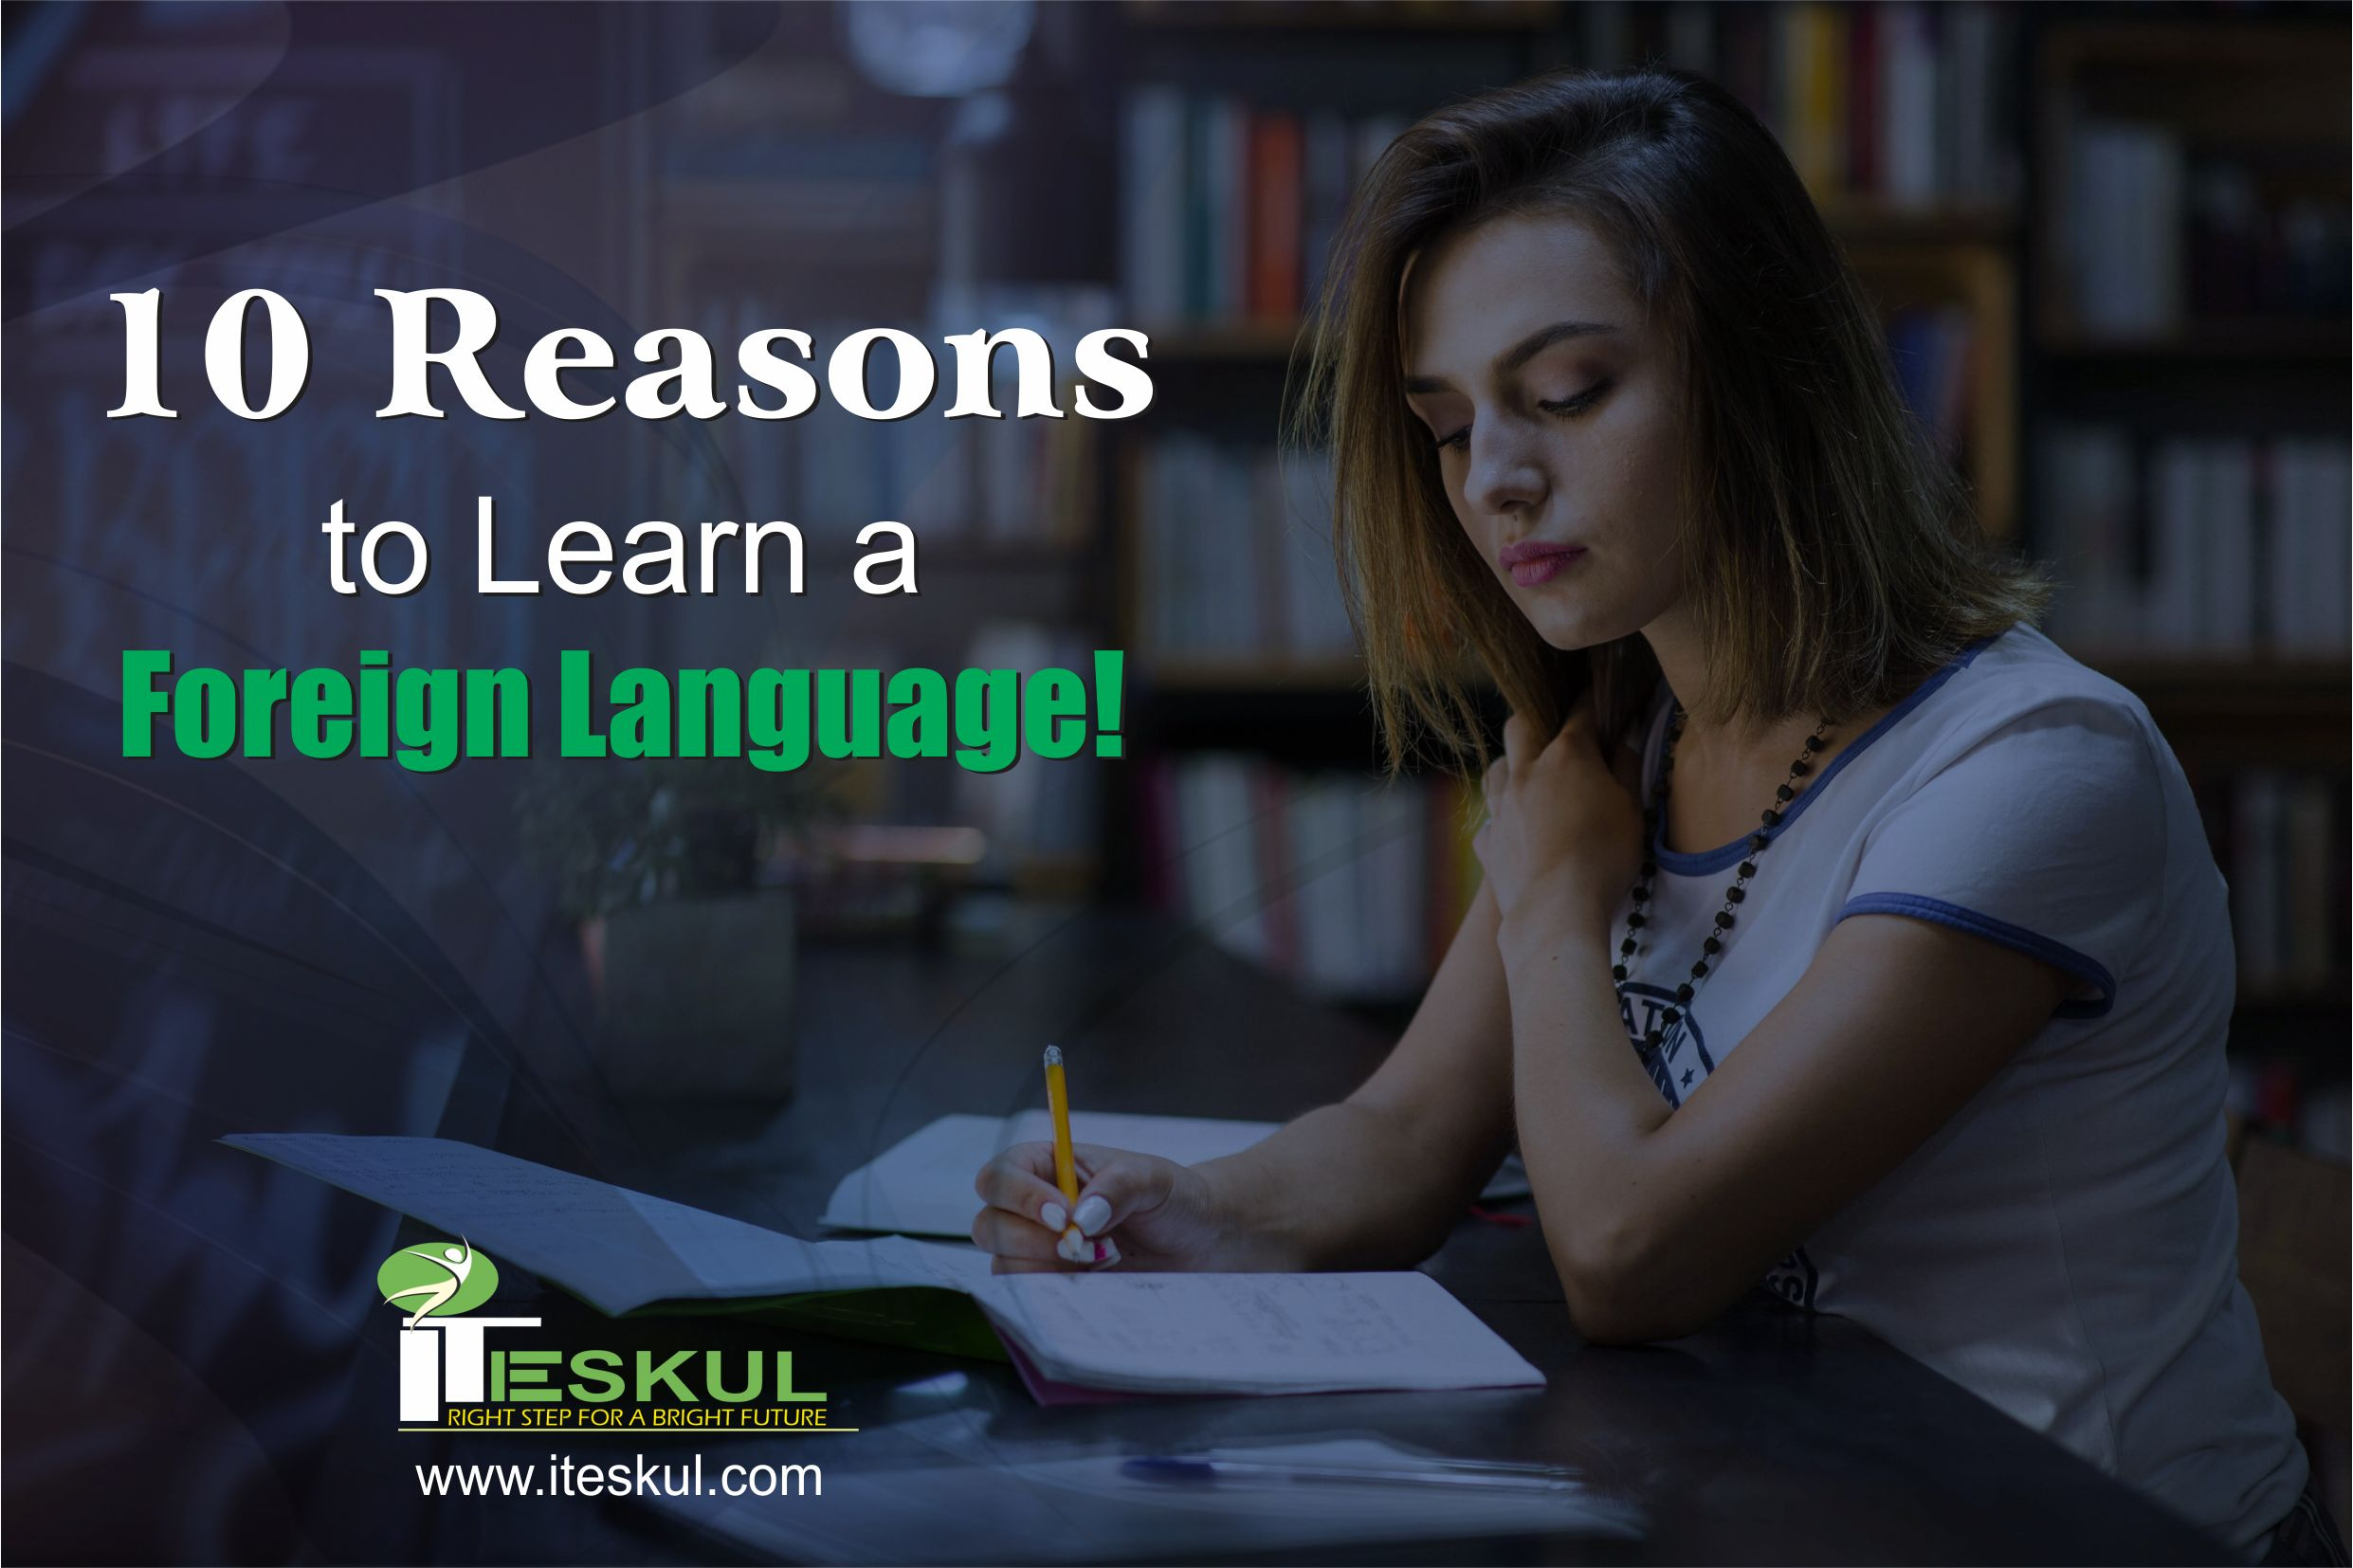 10 Reasons to Learn a Foreign Language!